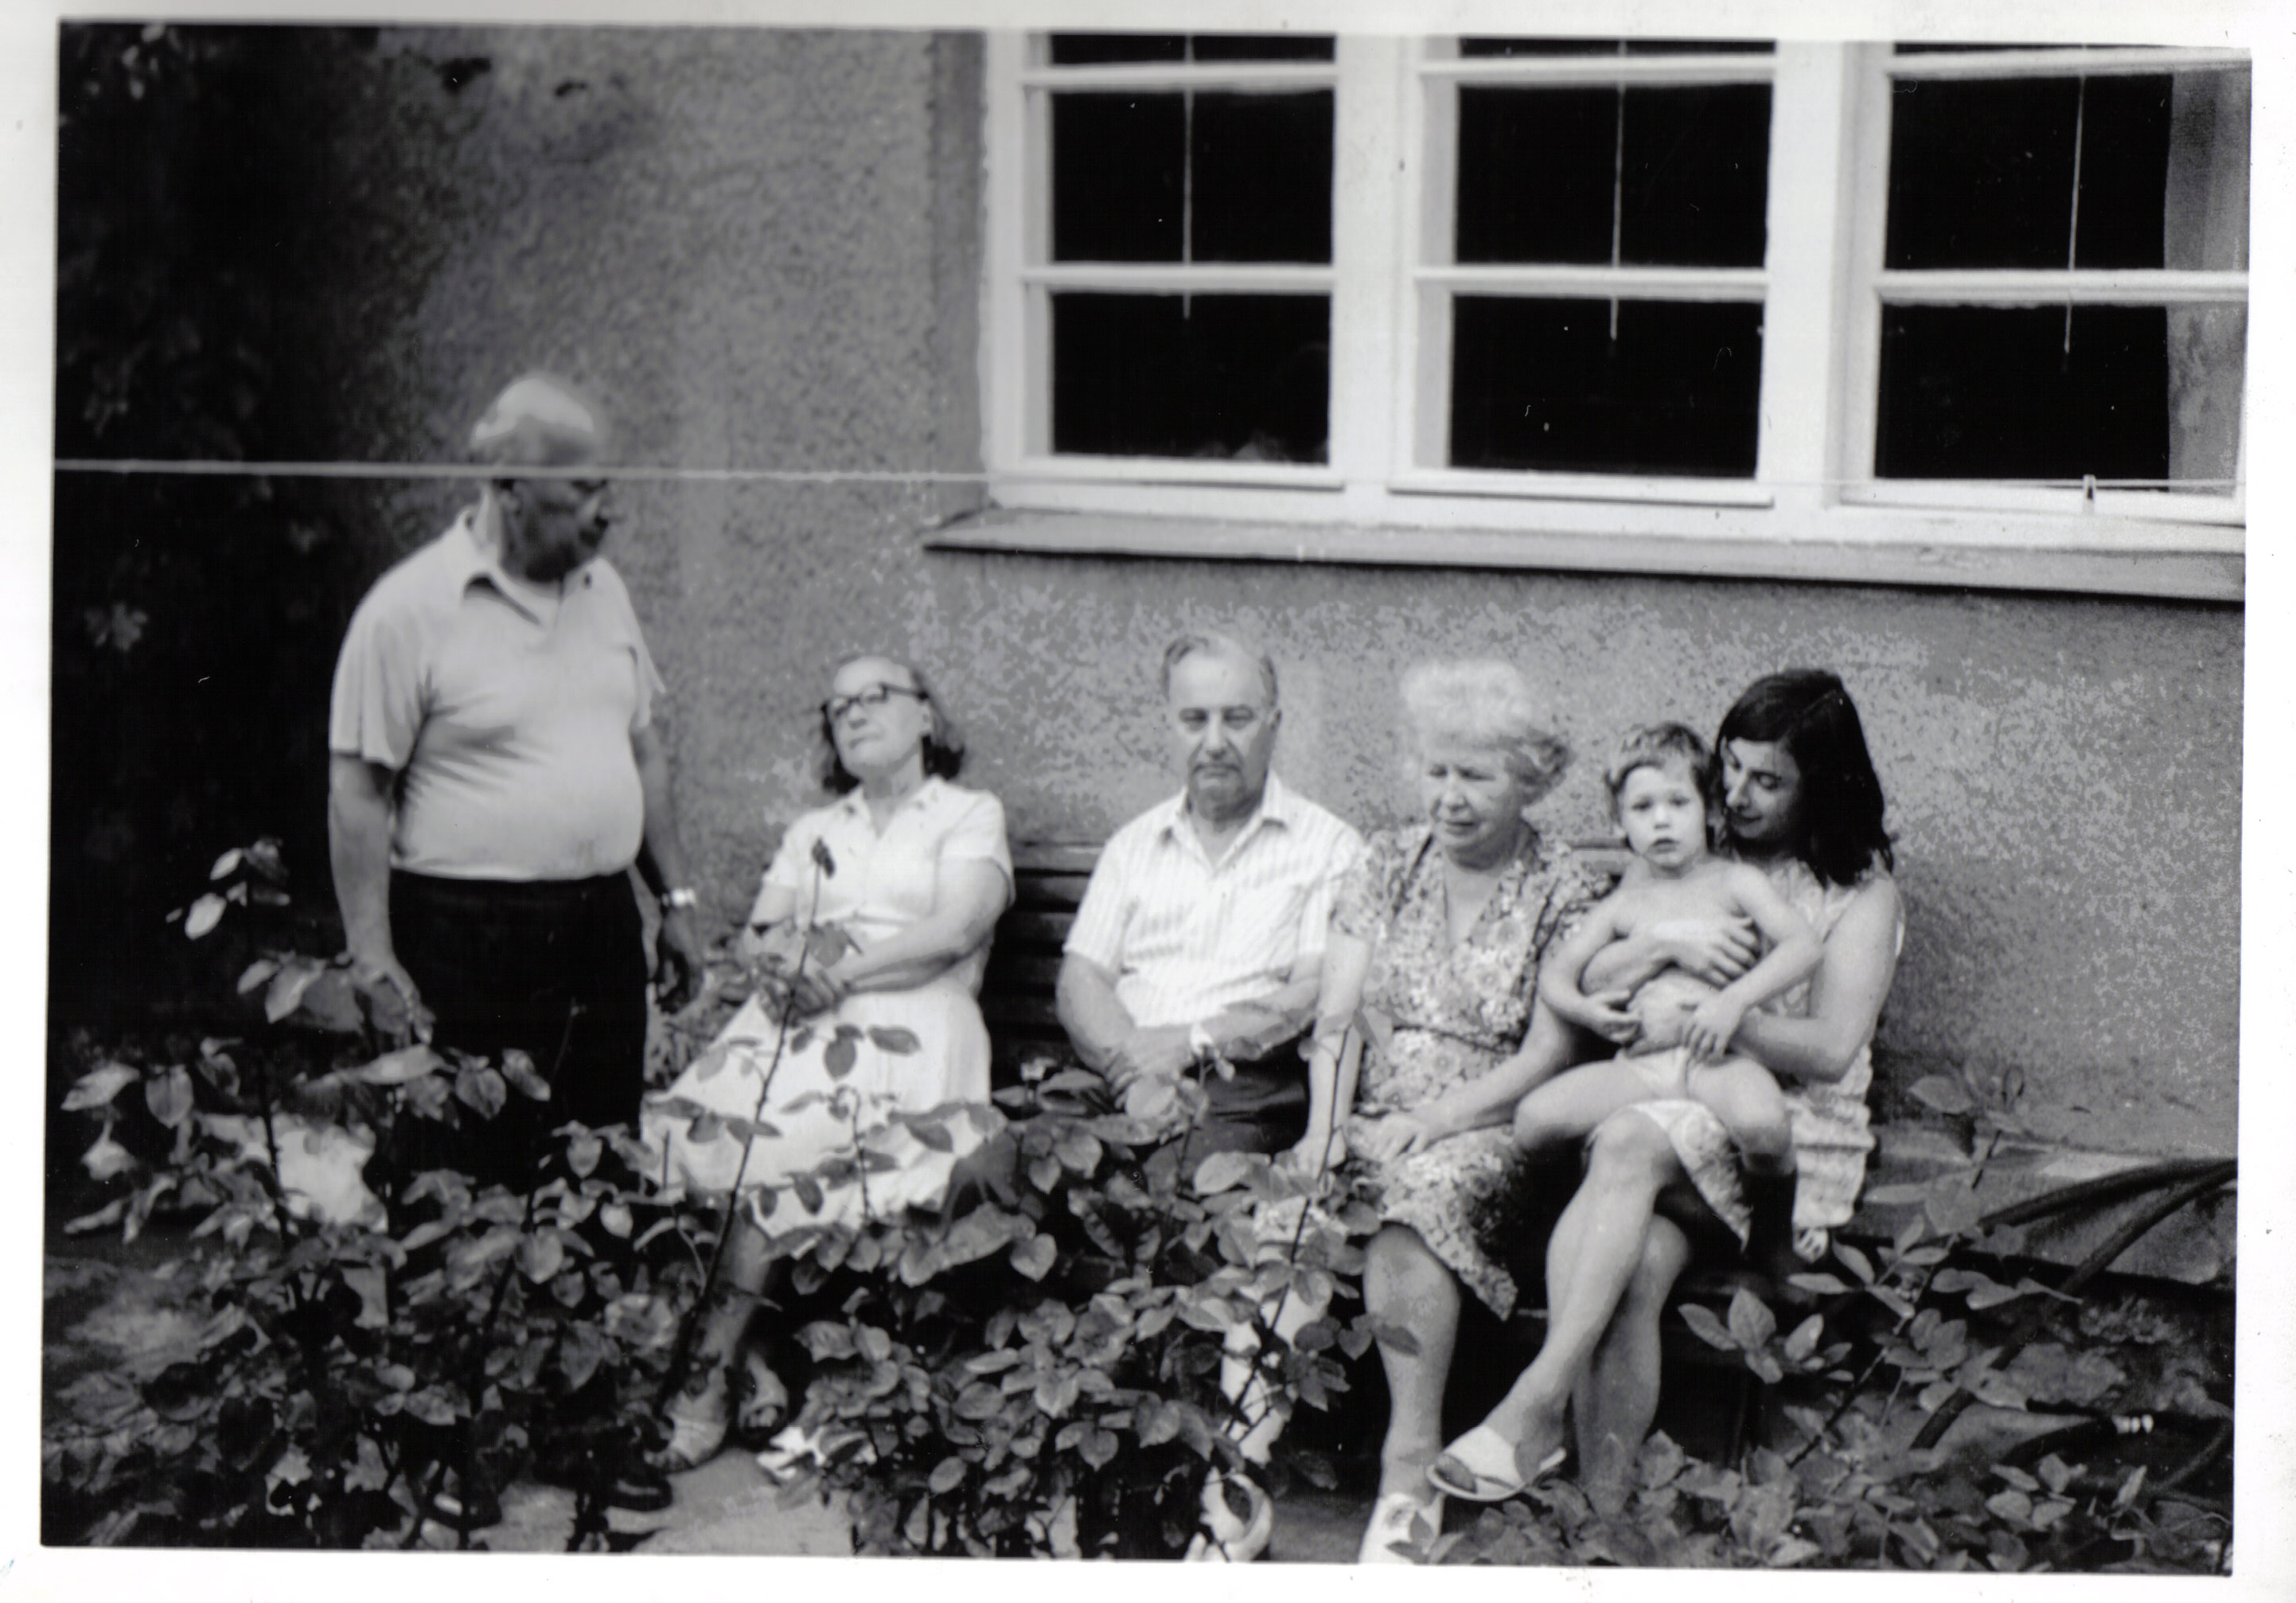 09 [picture] in our Rosegarden: Uncle Pepi (left), beside aunt Bea, uncle Pavel, his wife aunt Zdenka and mum Renate with me as little child